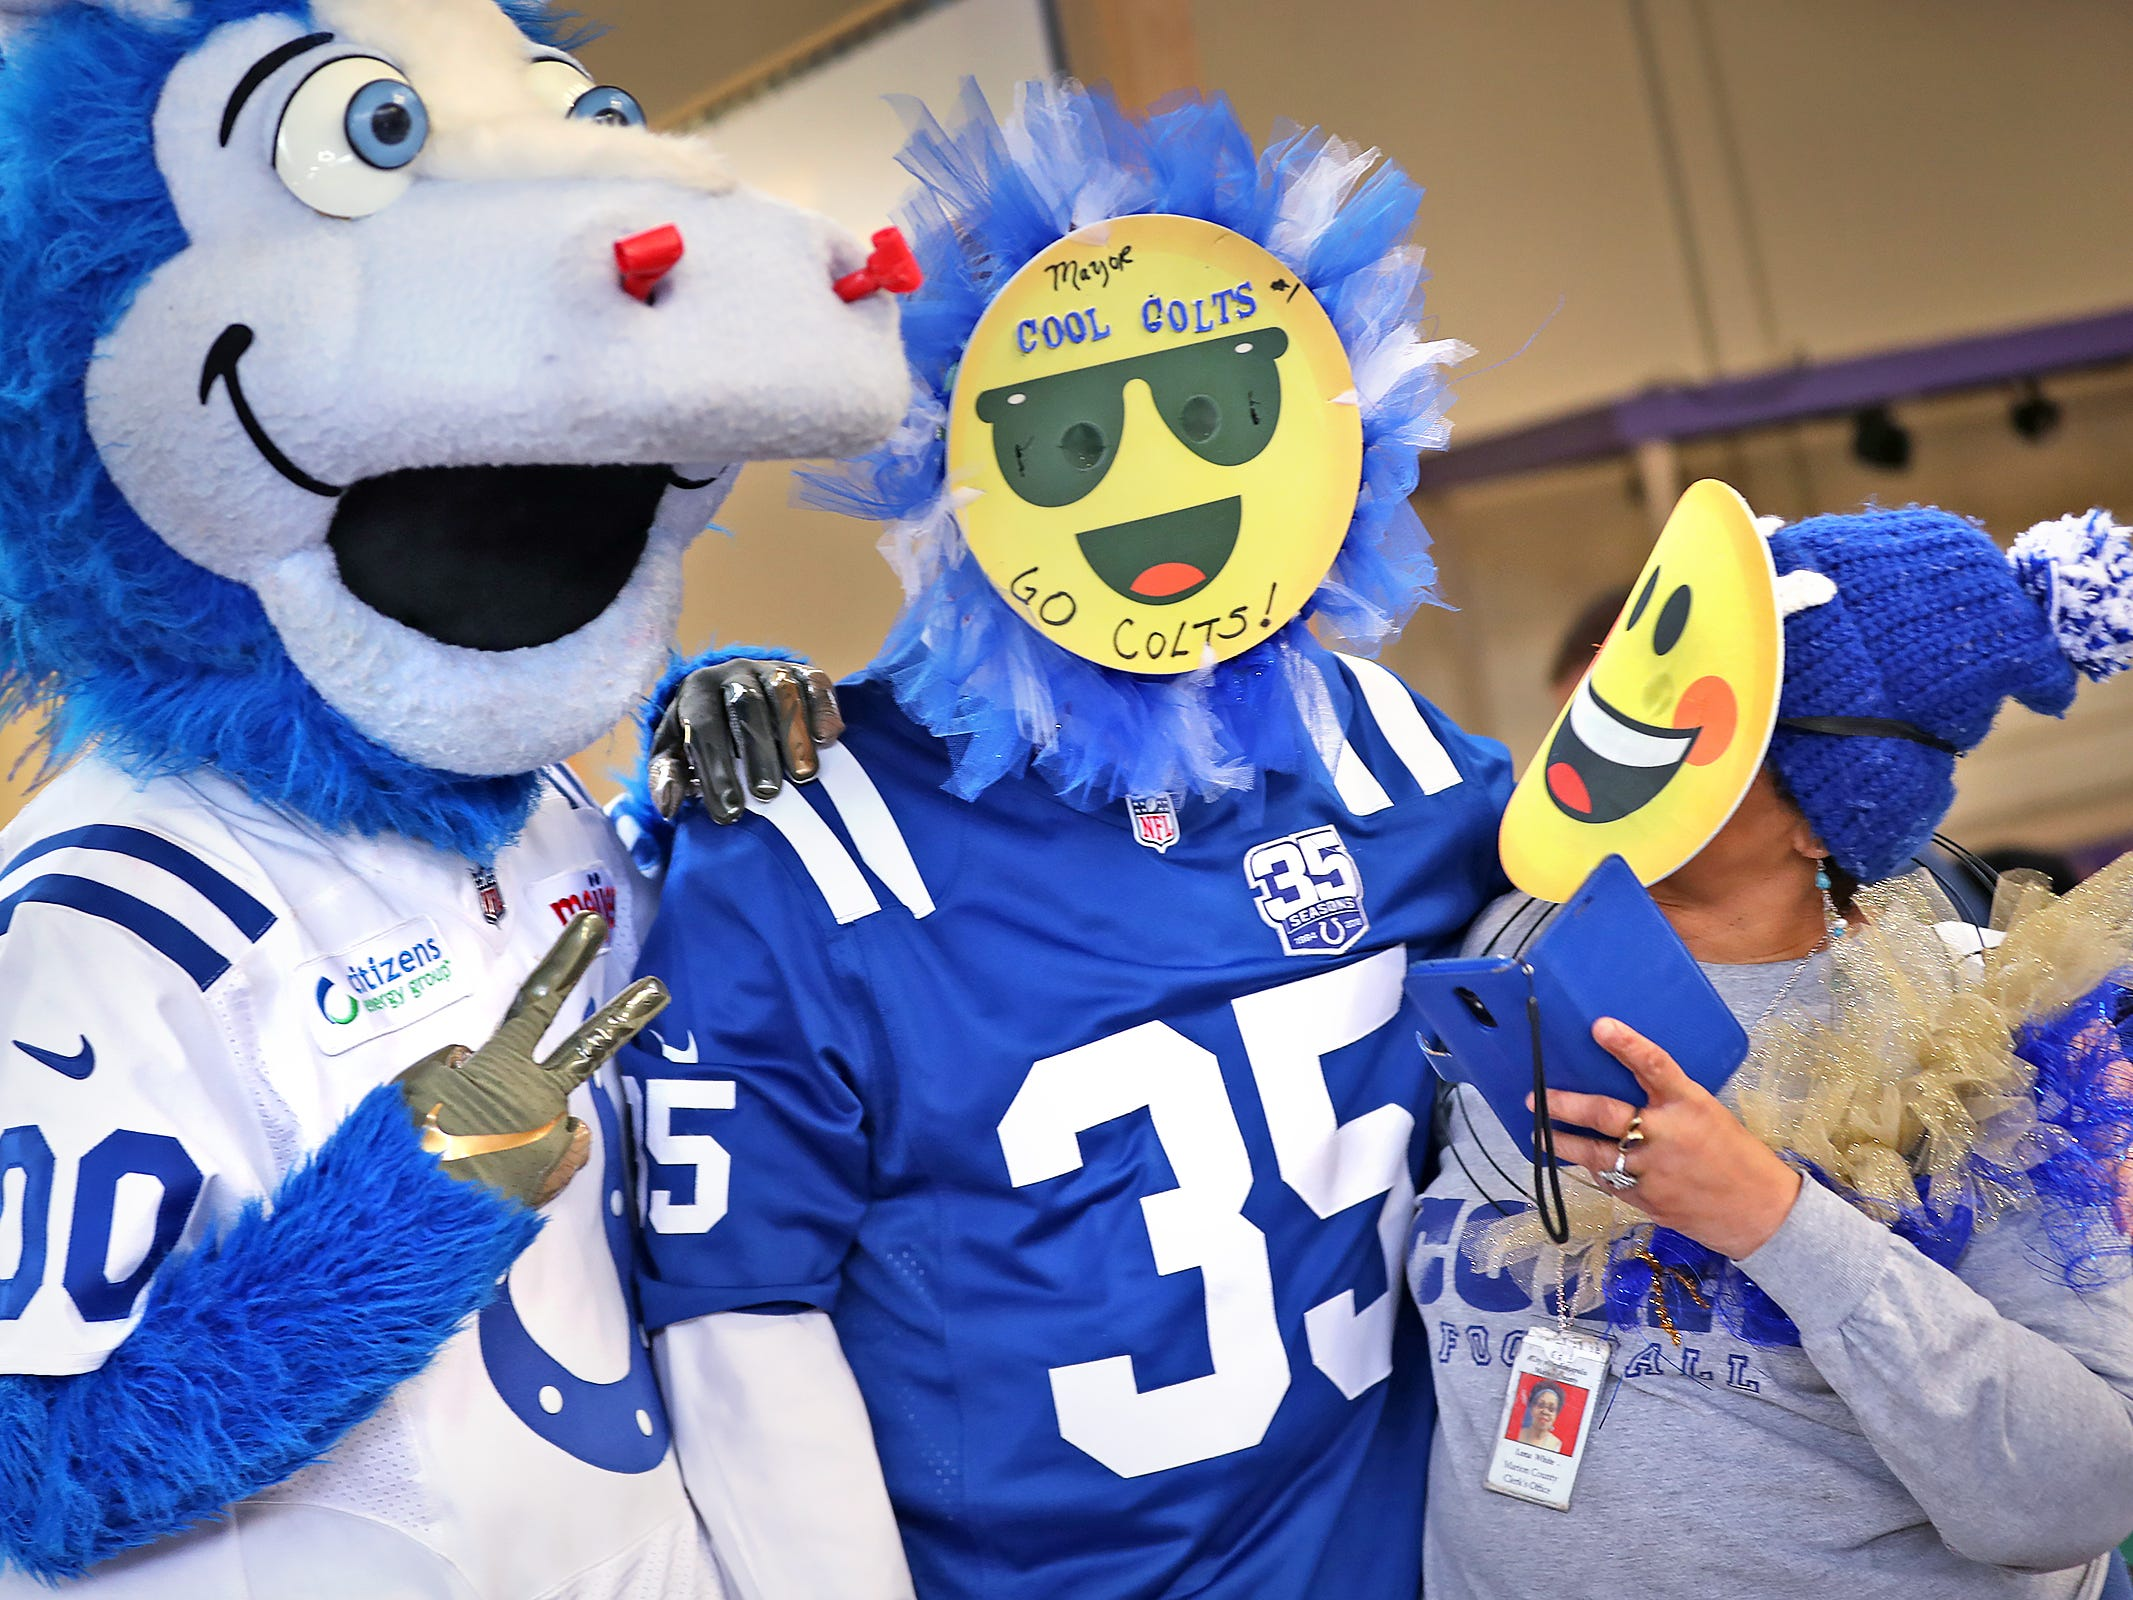 Lonna White, right, gets a hug from Colts mascot Blue, from left, Mayor Joe Hogsett, and Lonna White pose for photos at the City Market.  White makes these fan masks and made the one the mayor is wearing for him.  Fans had the opportunity to sign a 1-0 banner for the Colts at City Market, Thursday, Jan. 10, 2019.  The banner will be displayed for the team to see at the airport as they head off to their Kansas City playoff game.